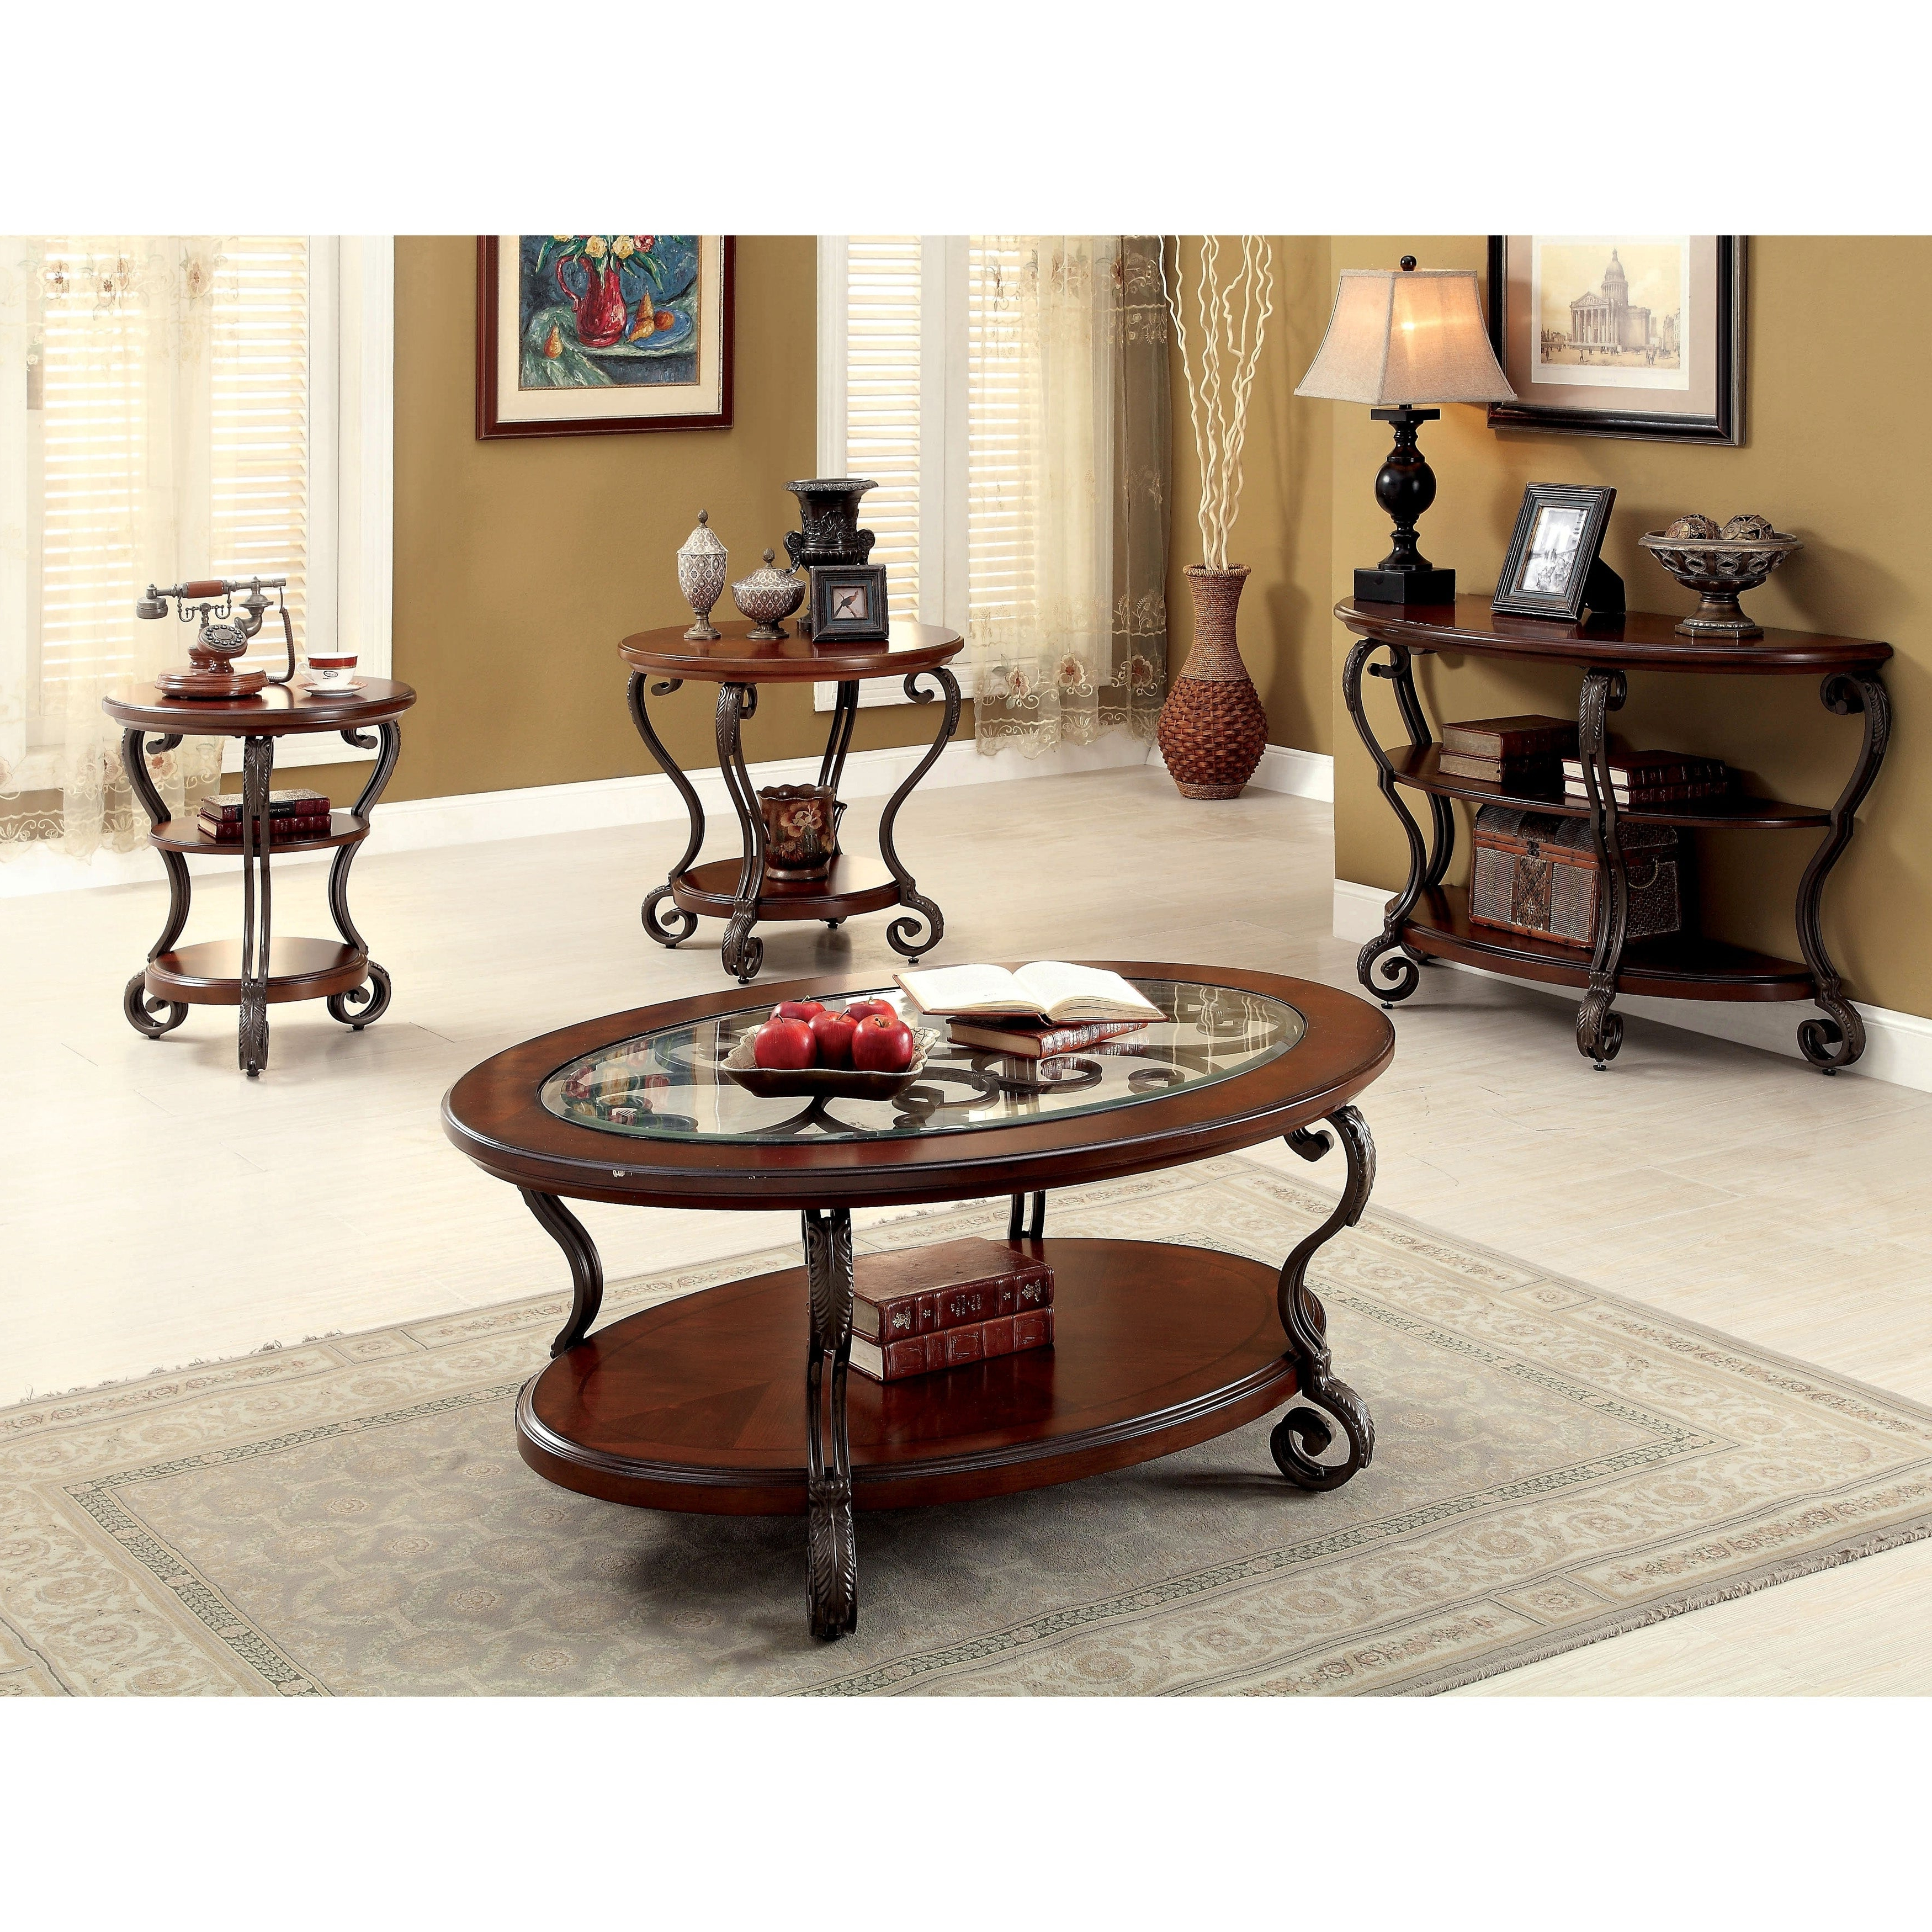 Cohler Transitional Brown Cherry 4 Piece Coffee Table Setfoa Pertaining To Recent Cohler Traditional Brown Cherry Oval Coffee Tables (View 8 of 20)